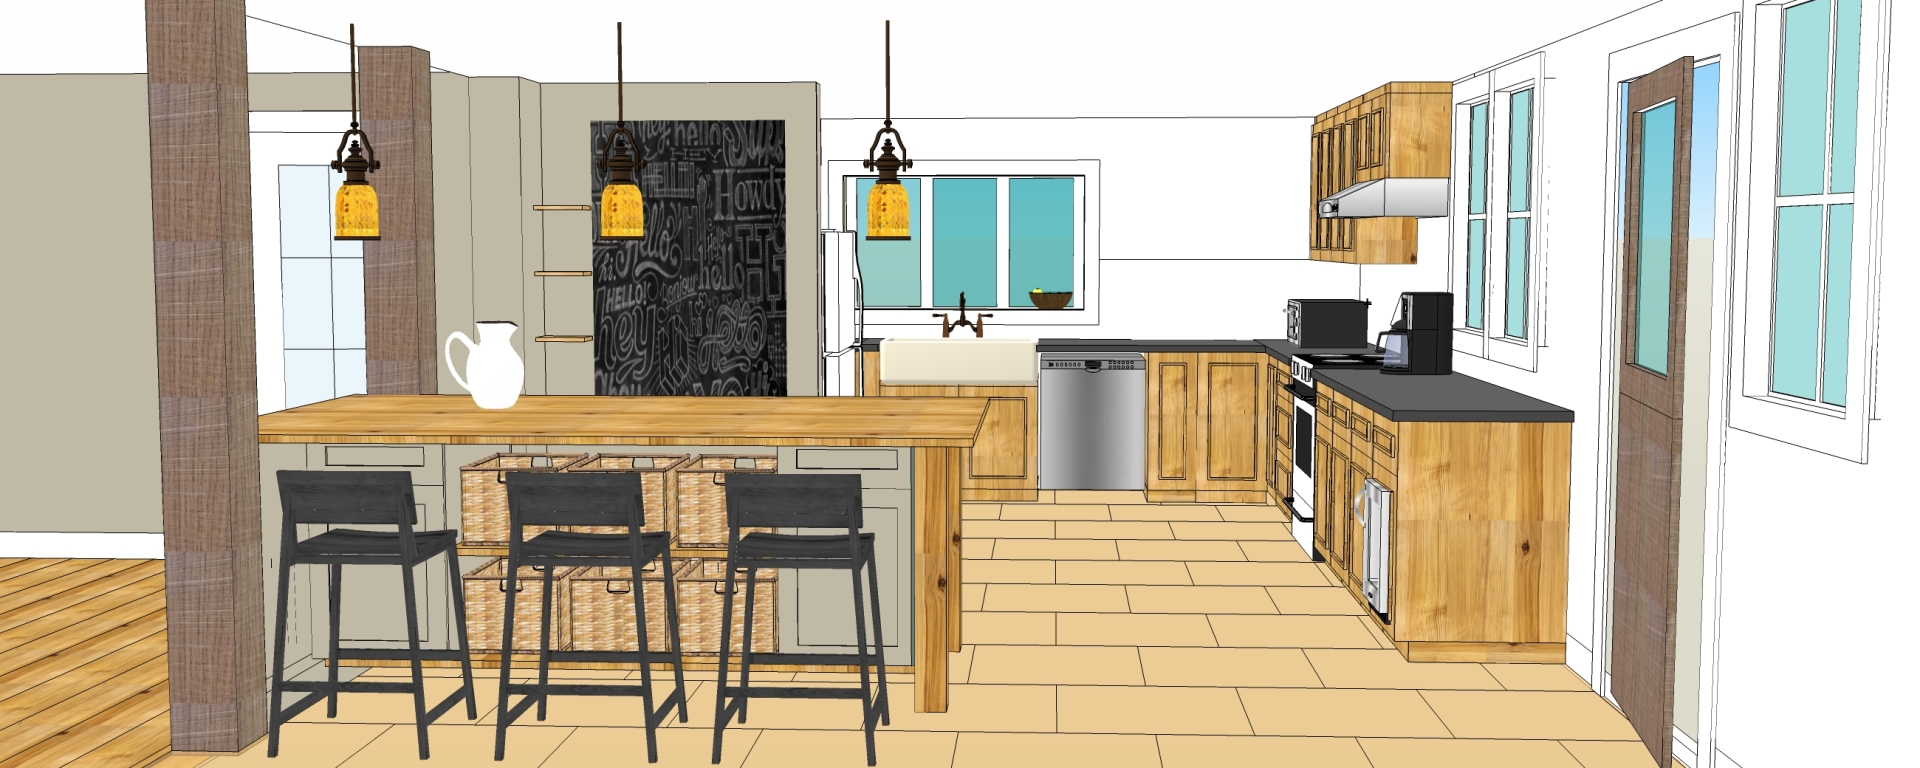 New Kitchen Design - Updated - Vermont Farmhouse Project